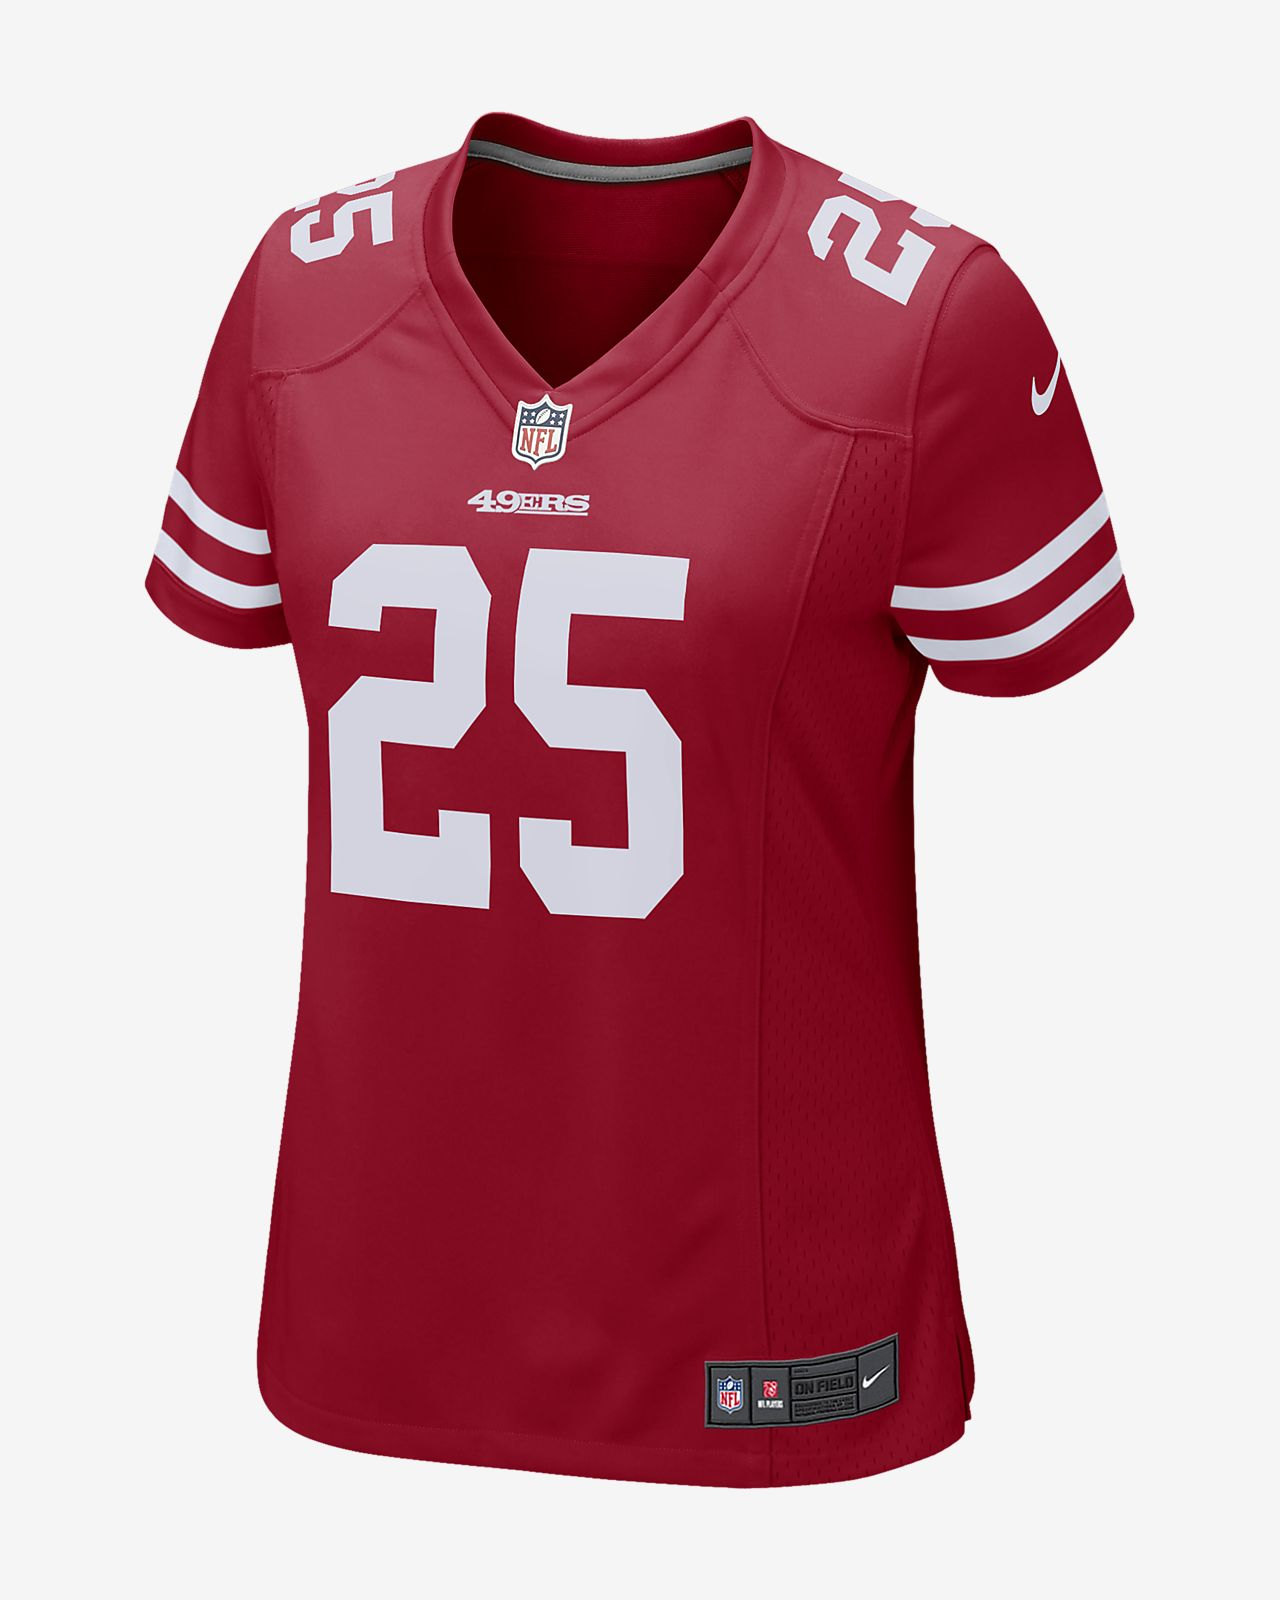 Women s Football Jersey. NFL San Francisco 49ers Game (Richard Sherman) 1e0833645